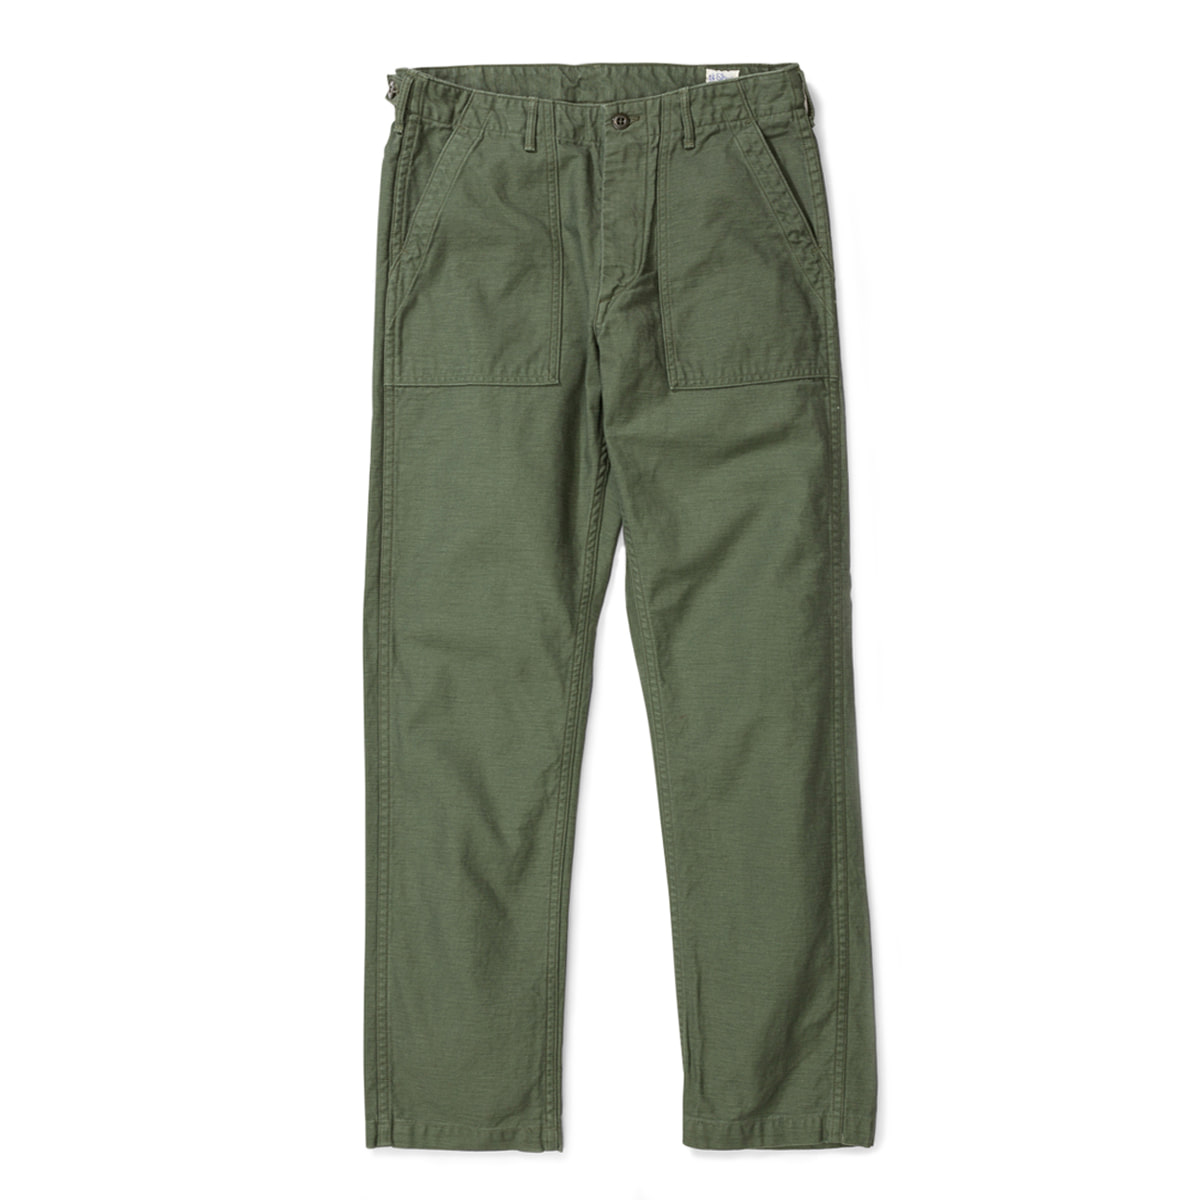 [ORSLOW] US ARMY FATIGUE SLIM FIT PANTS 'OLIVE'